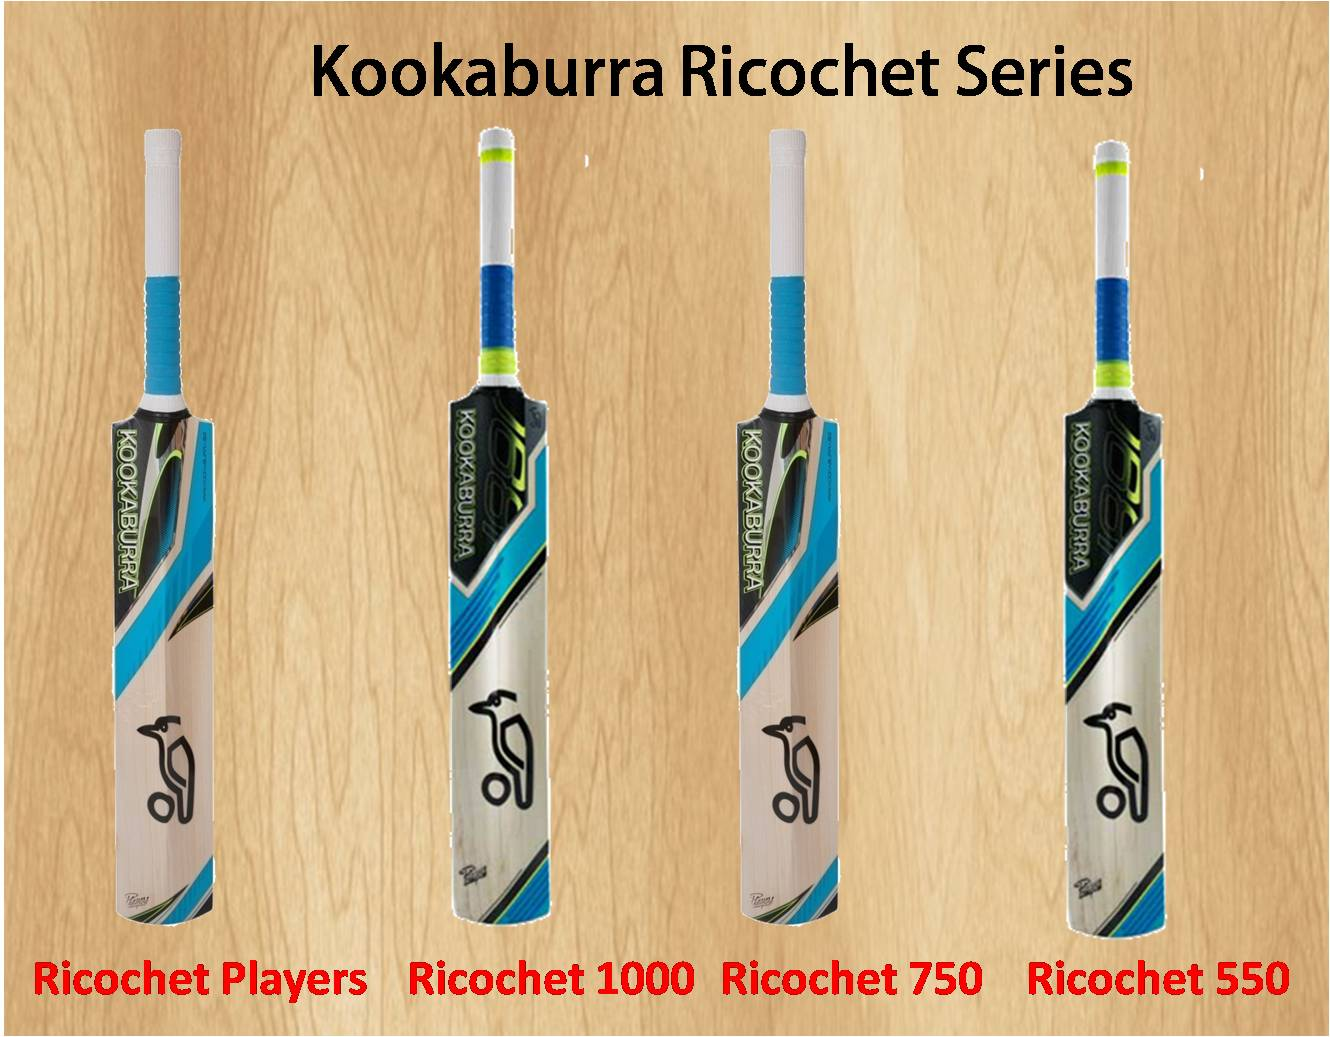 Kookaburra Ricochet Series Cricket Bat